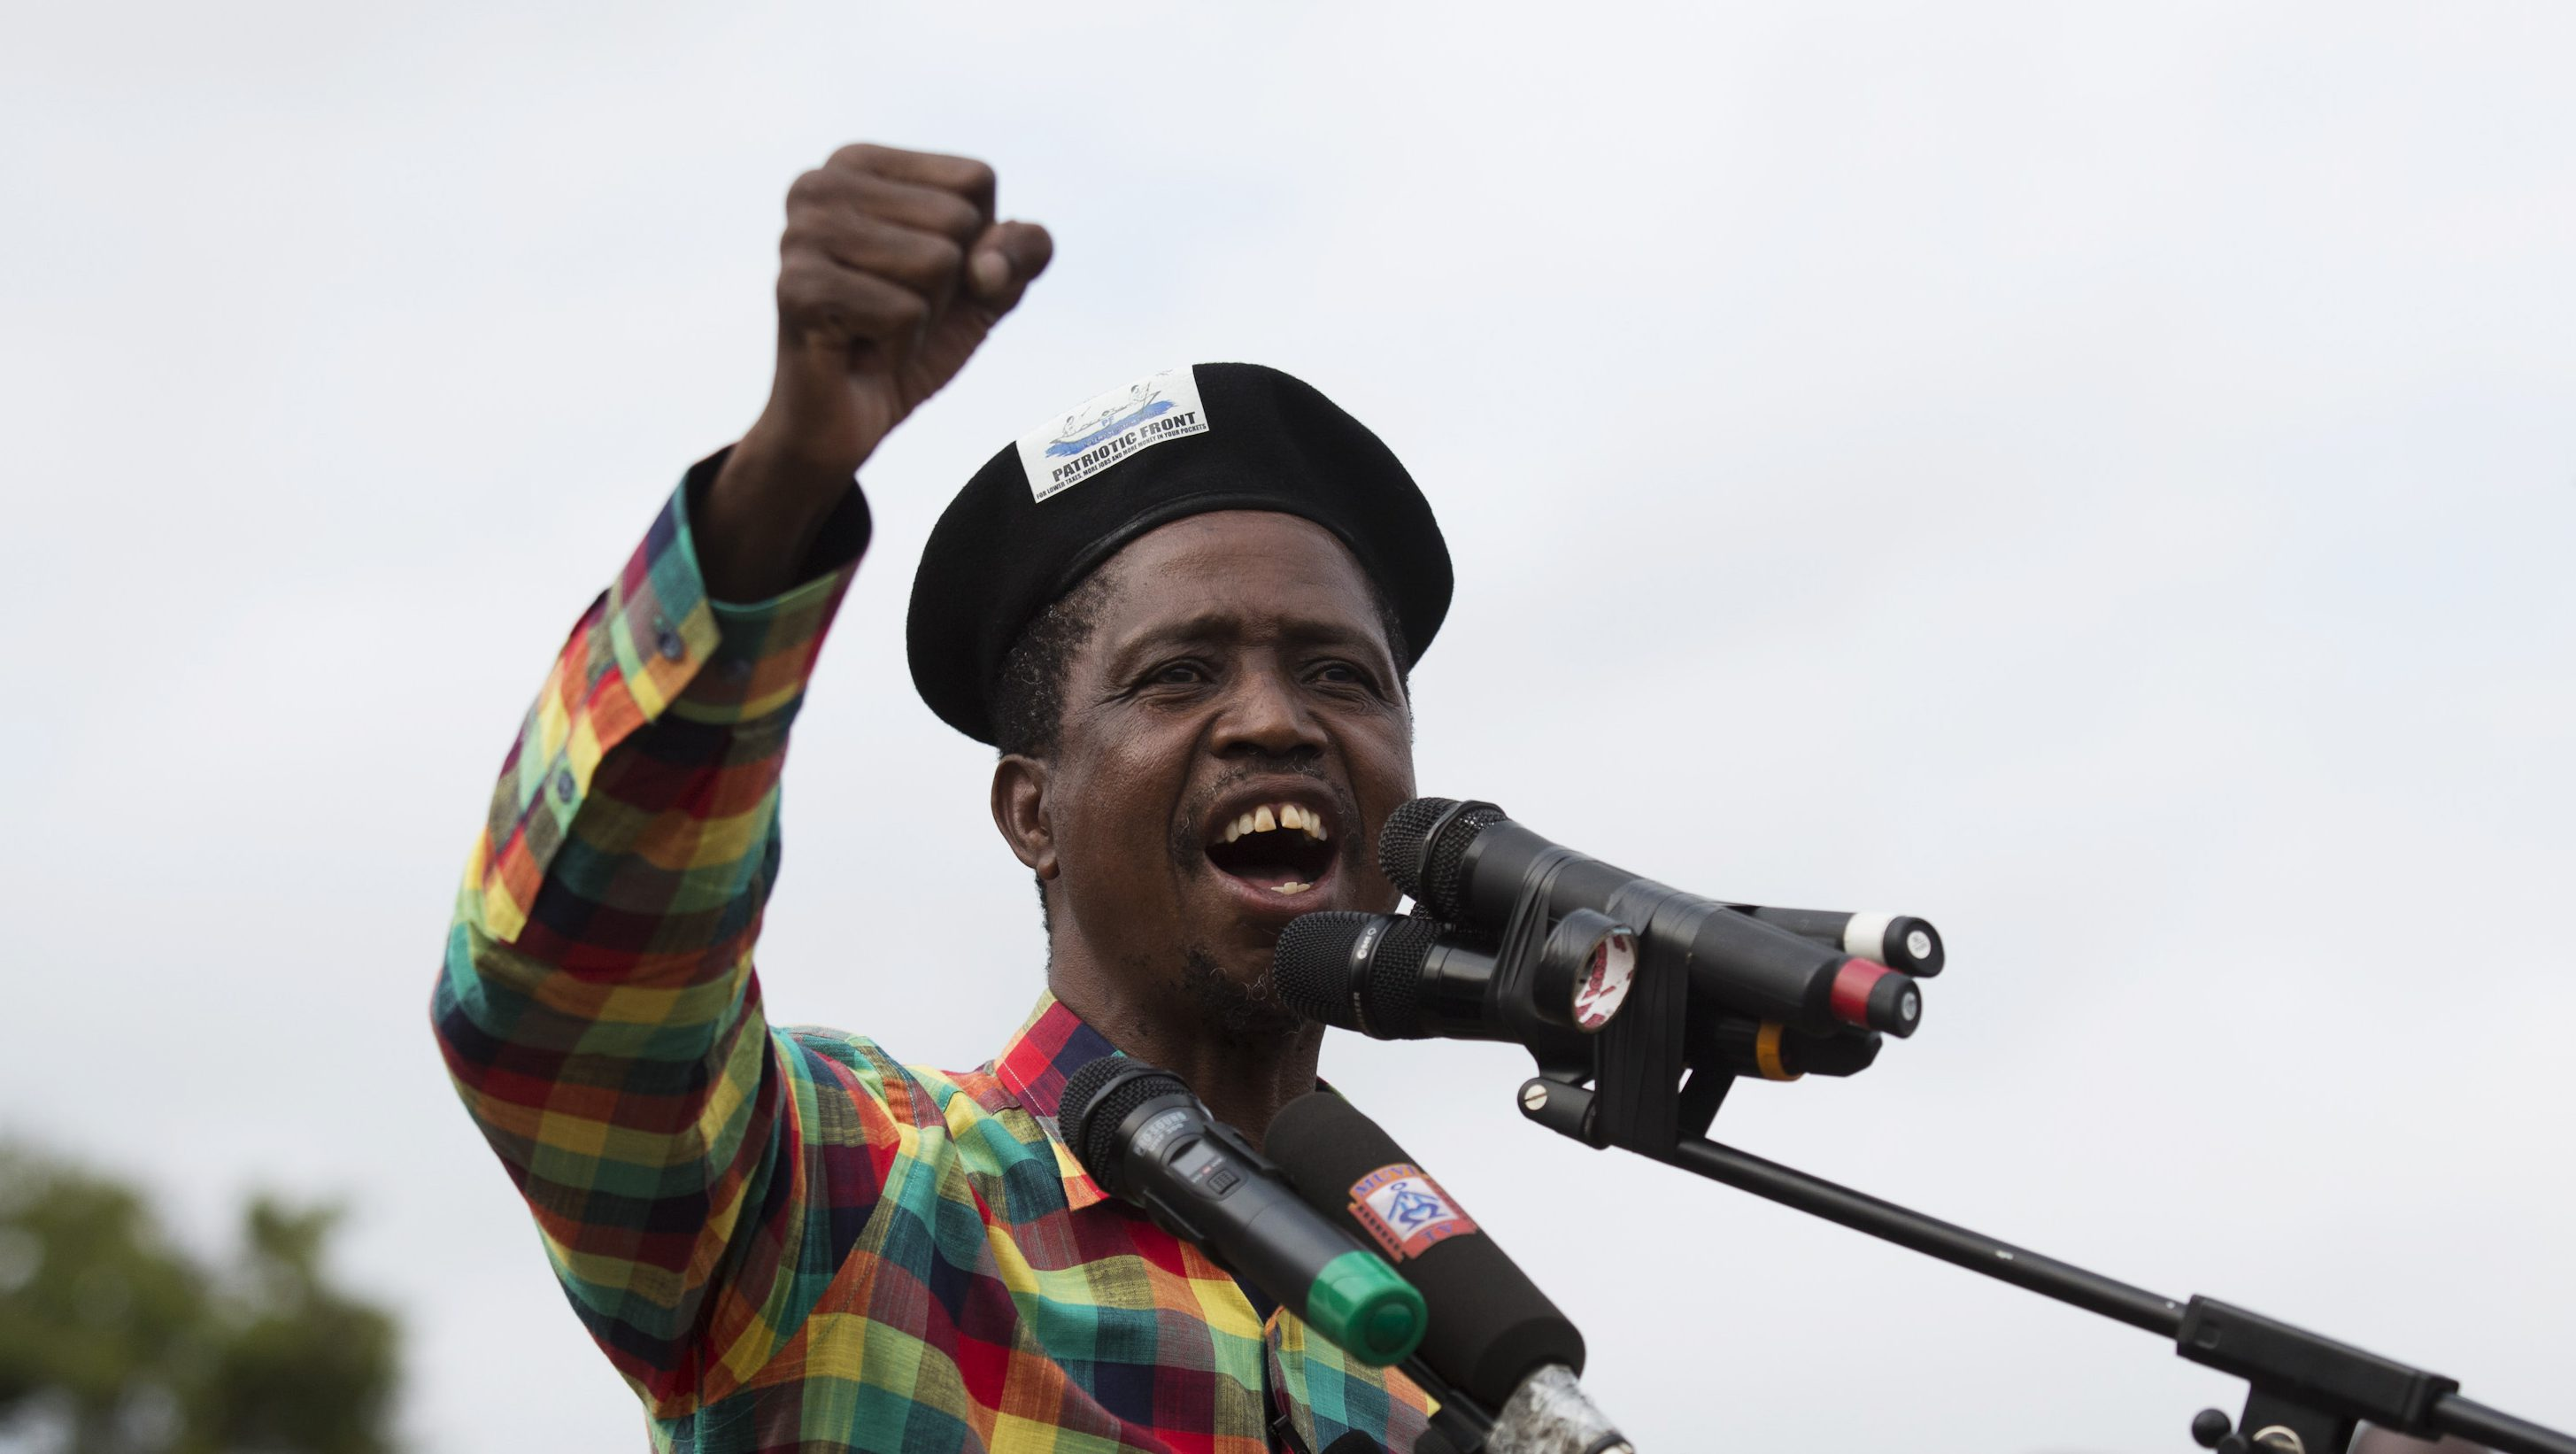 Patriotic Front (PF) Presidential candidate Edgar Lungu speaks at a rally in Lusaka January 19, 2015. Lungu's rapid rise from backroom politician to presidential front-runner in one of Africa's most promising frontier markets has revealed tactical nous and a steely determination that few knew lay beneath his quiet exterior. Zambians go to the polls on January 20, 2015 following the death of President Michael Sata in October 2014.